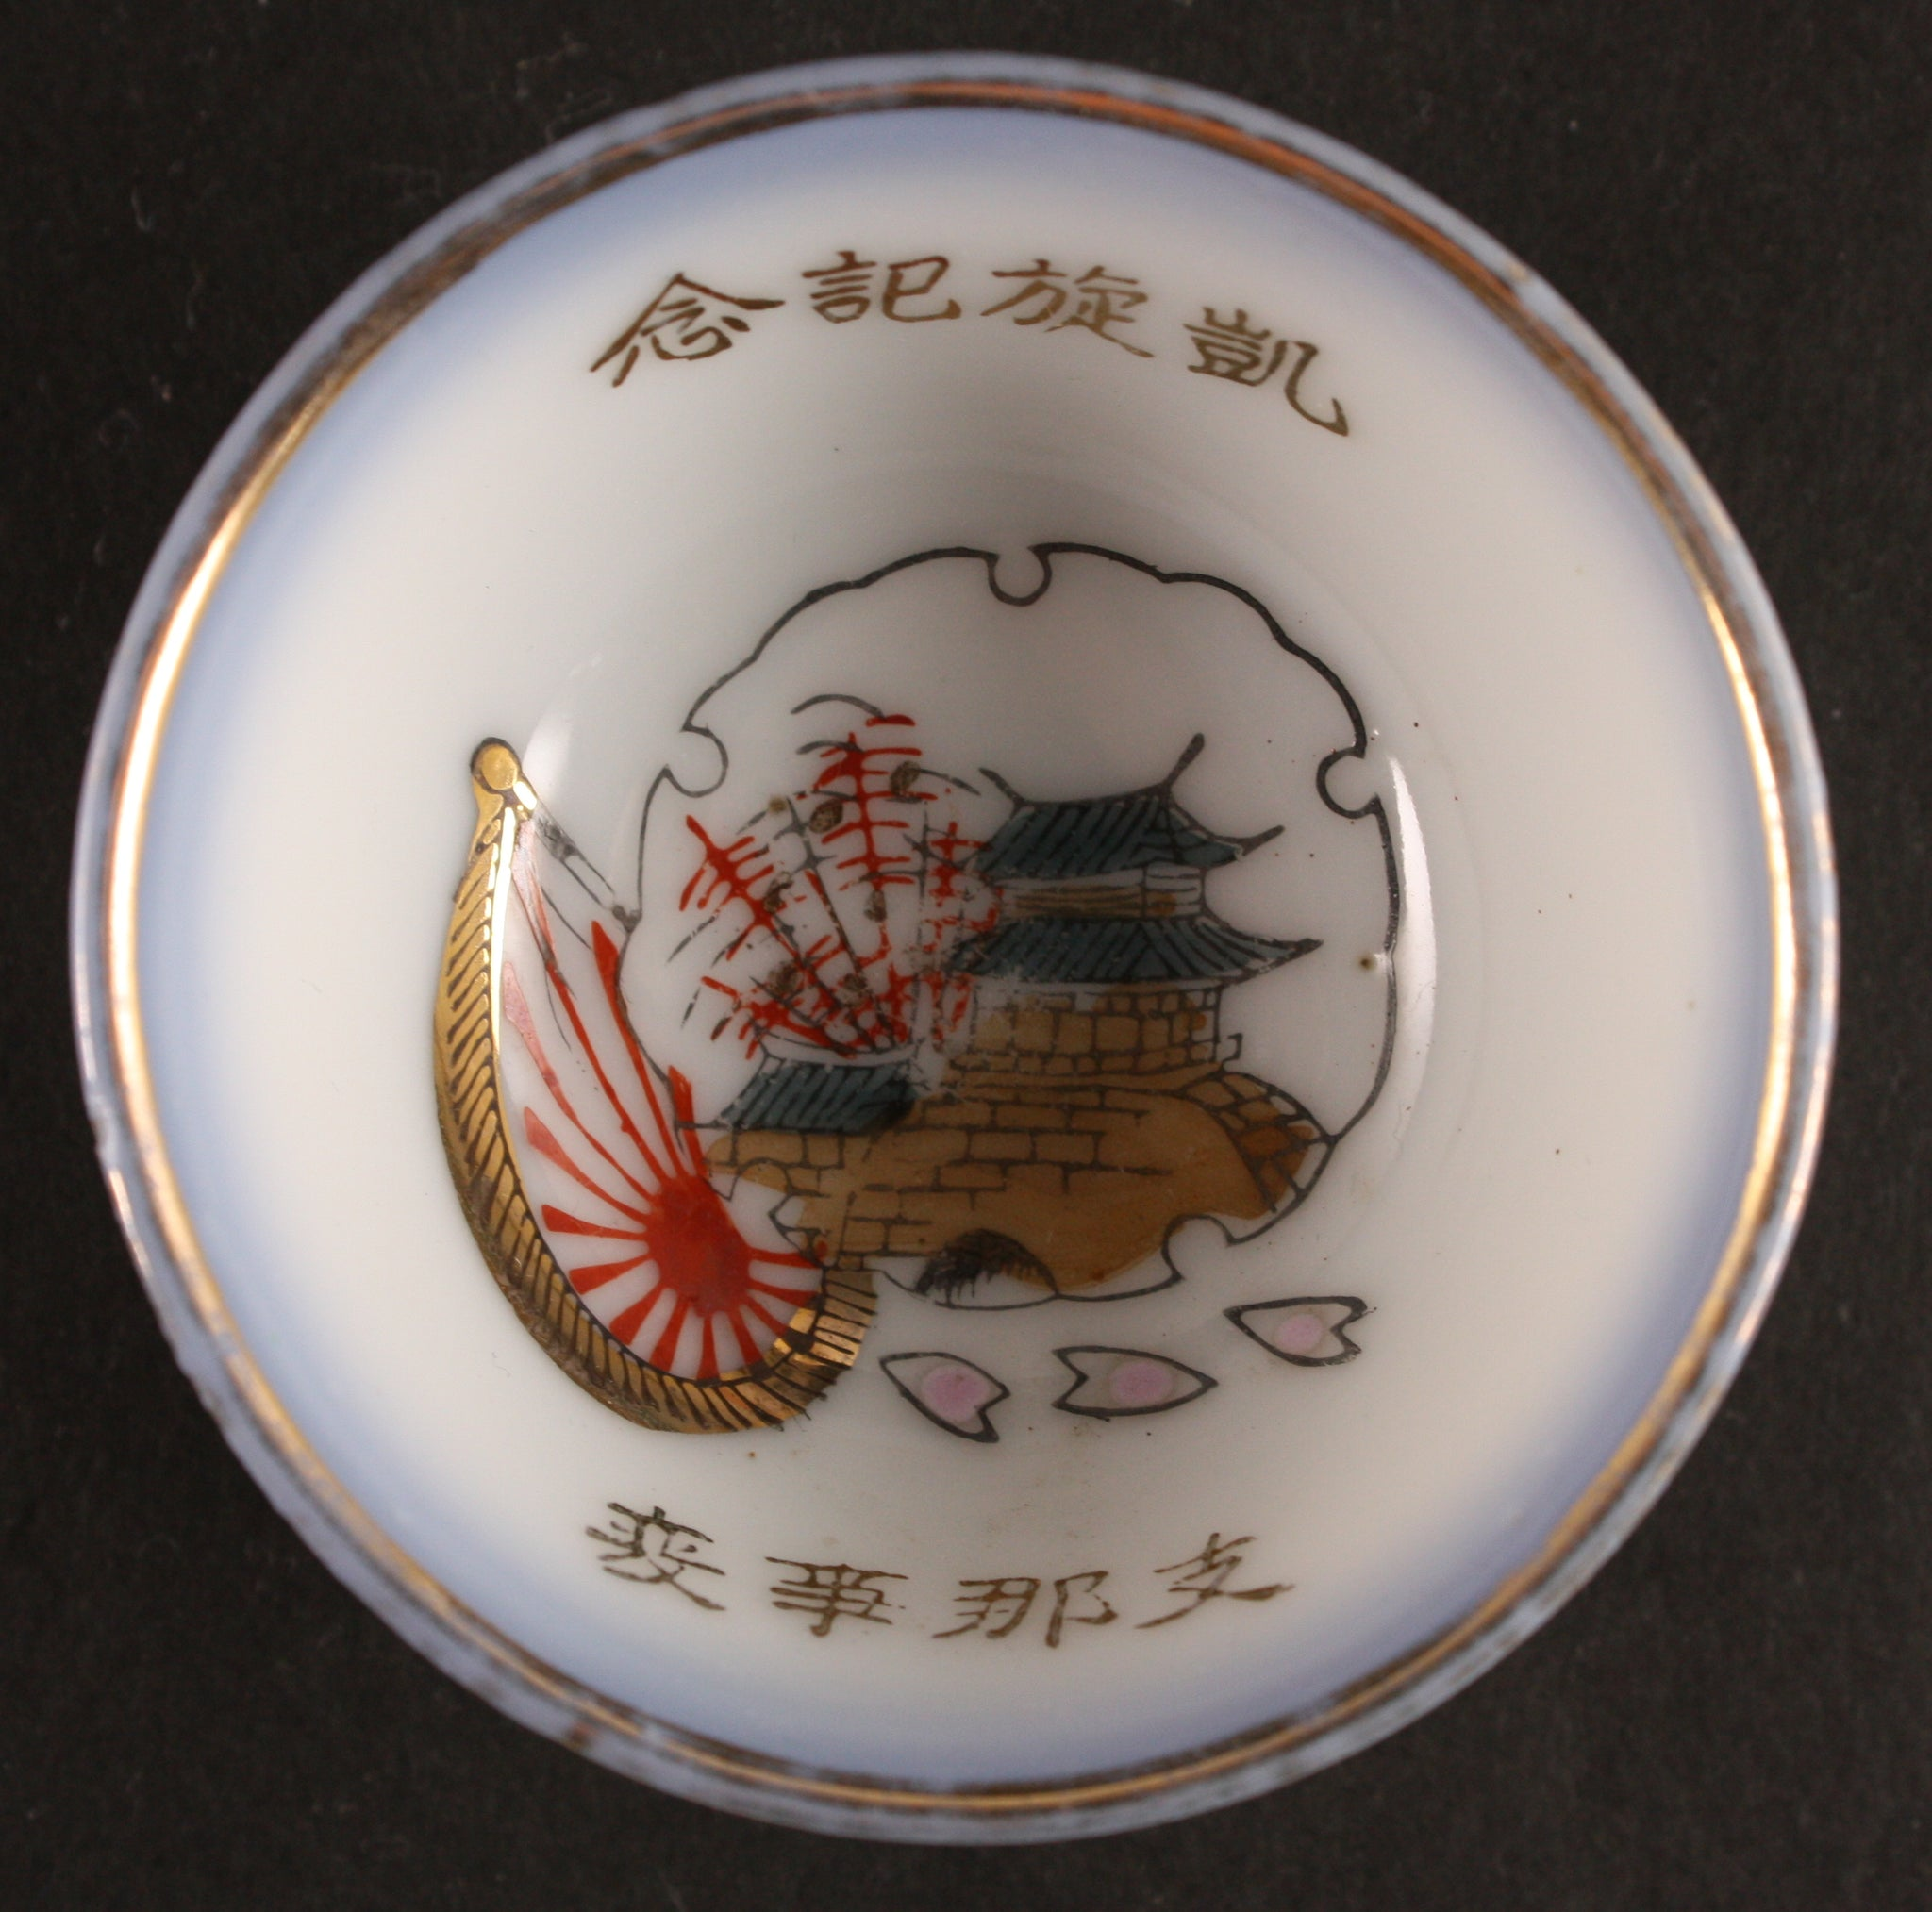 Antique Japanese Military Bombing Chinese City Gate Army Sake Cup